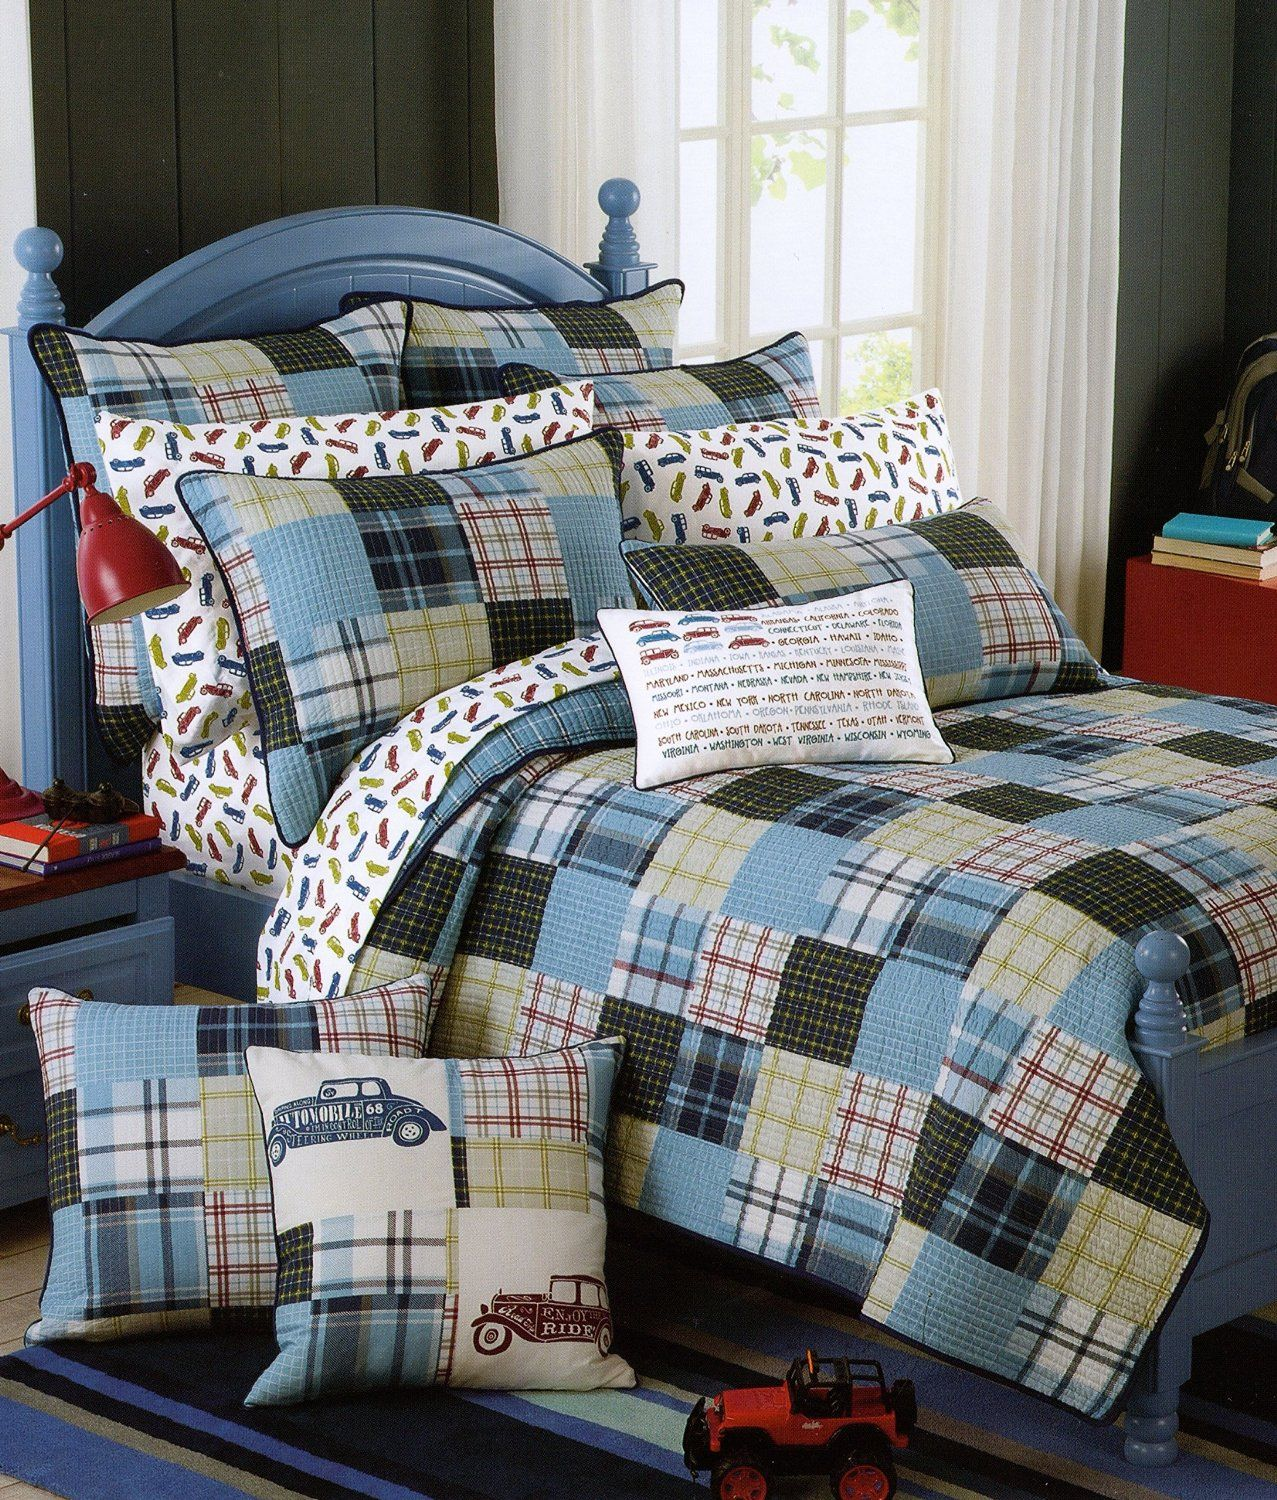 Red Truck Moving Co Plaid Quilt Set 2-Piece Cotton Reversible Quilt Set, Twin Coverlet Bedspread Boys Bedding (Twin)